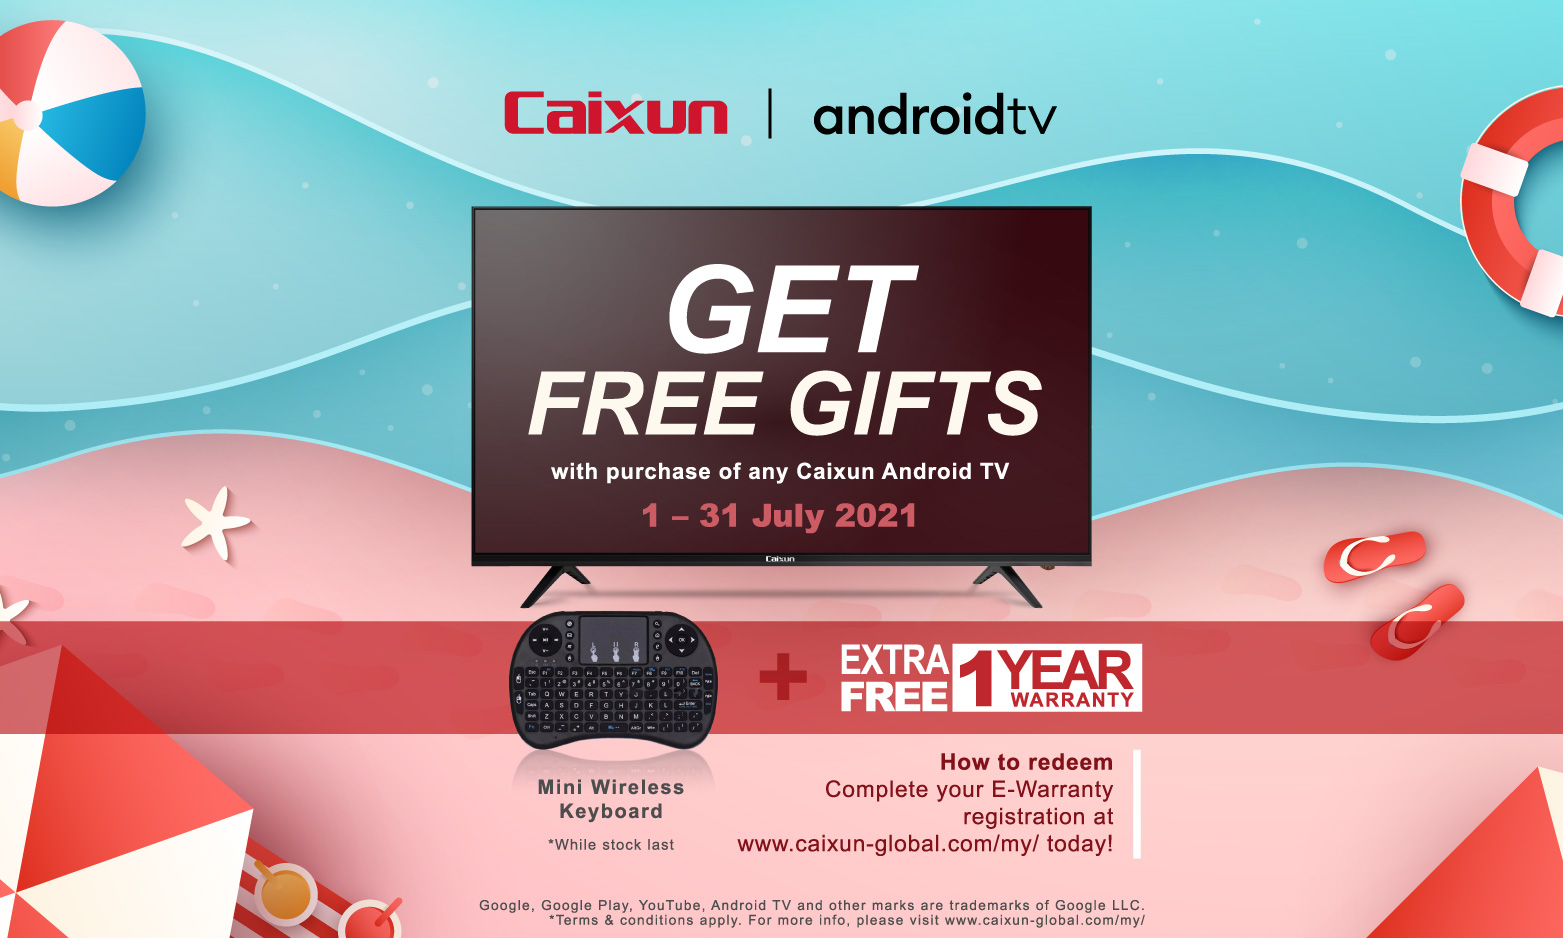 June-July Promotion from Caixun Malaysia!